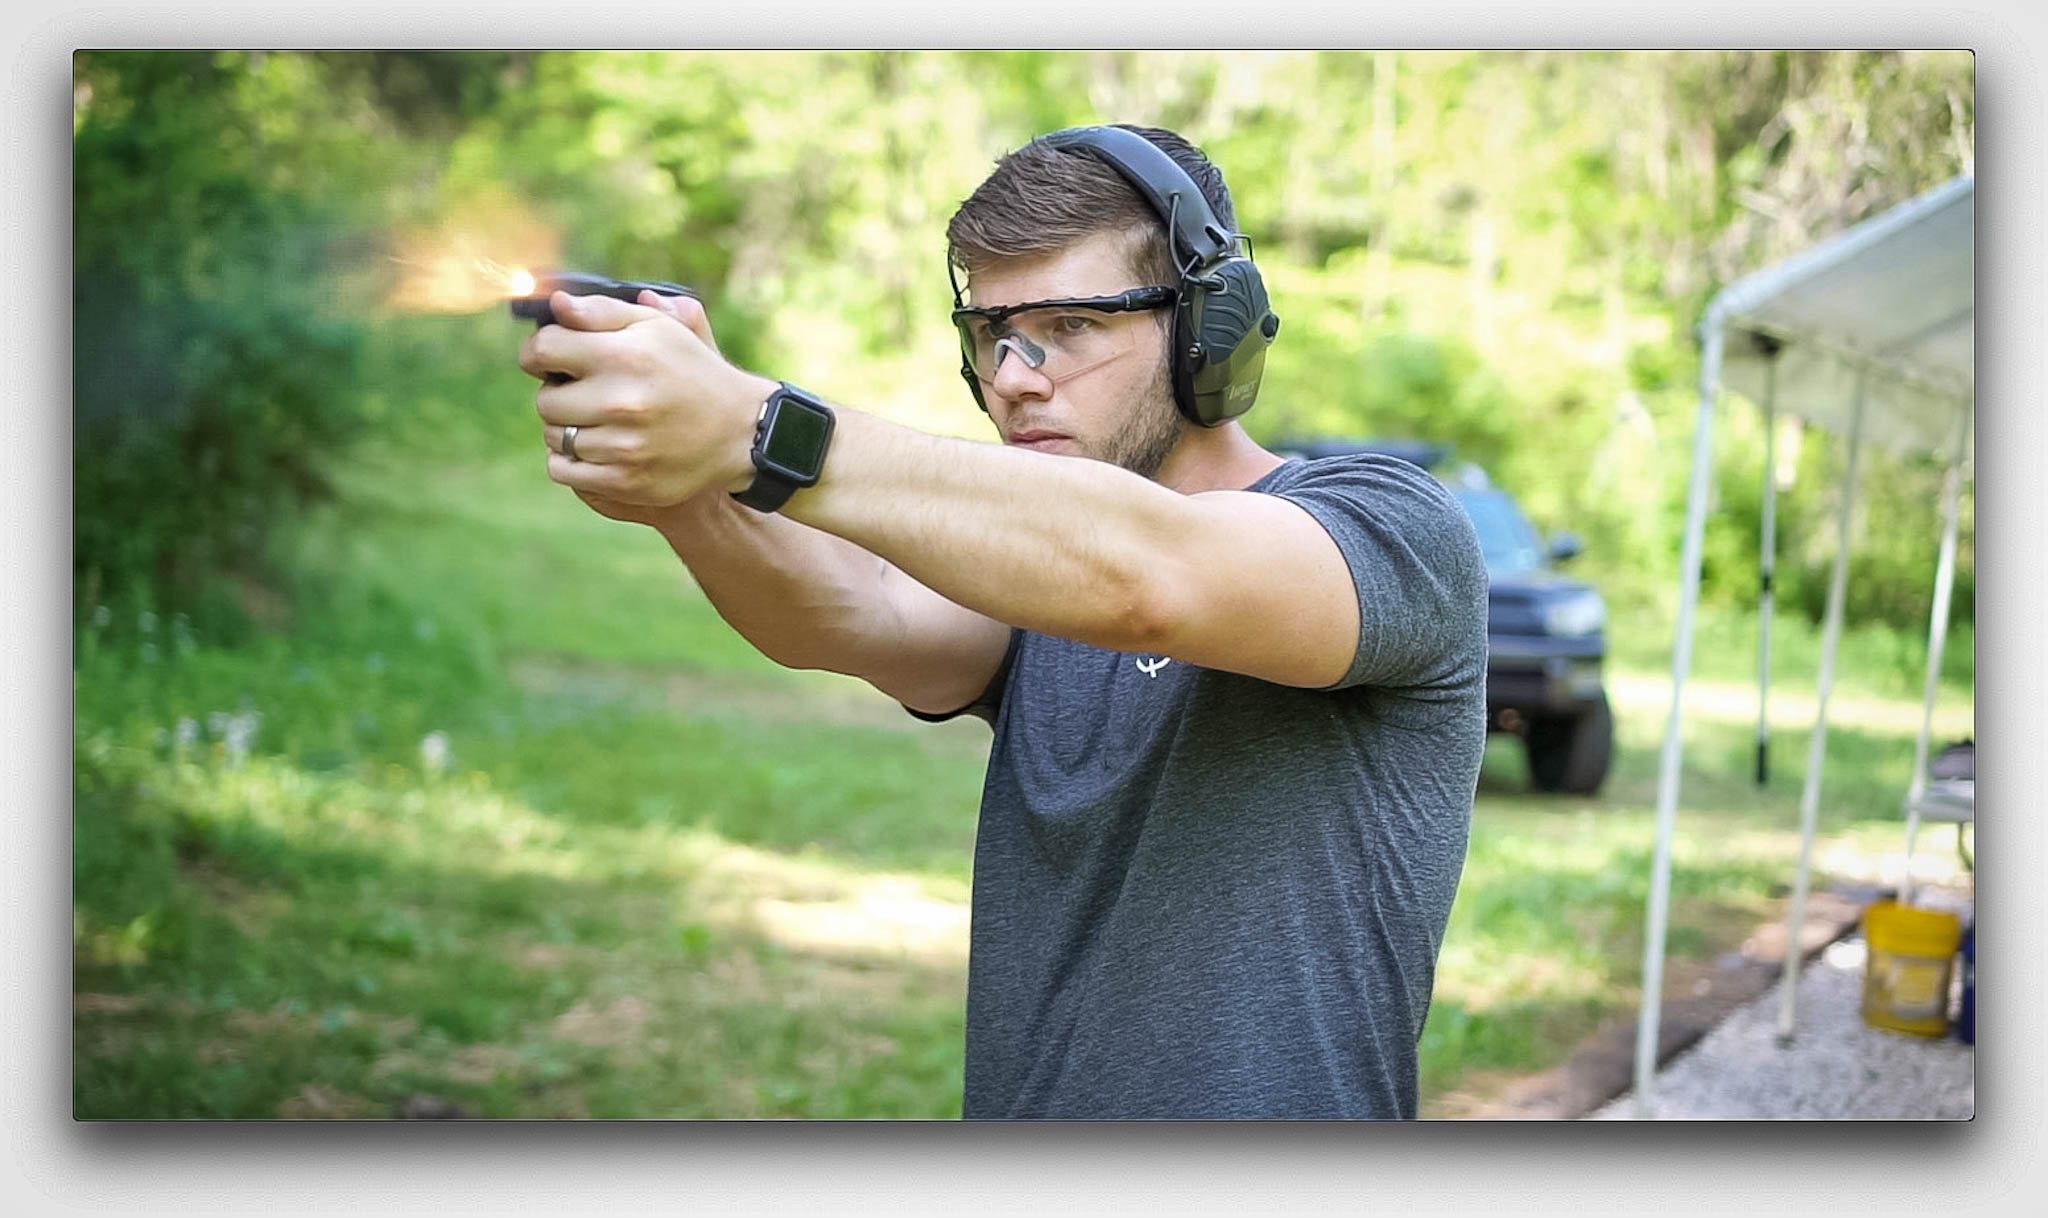 Nolan, the author Firing a Glock 42 as part of this review testing.